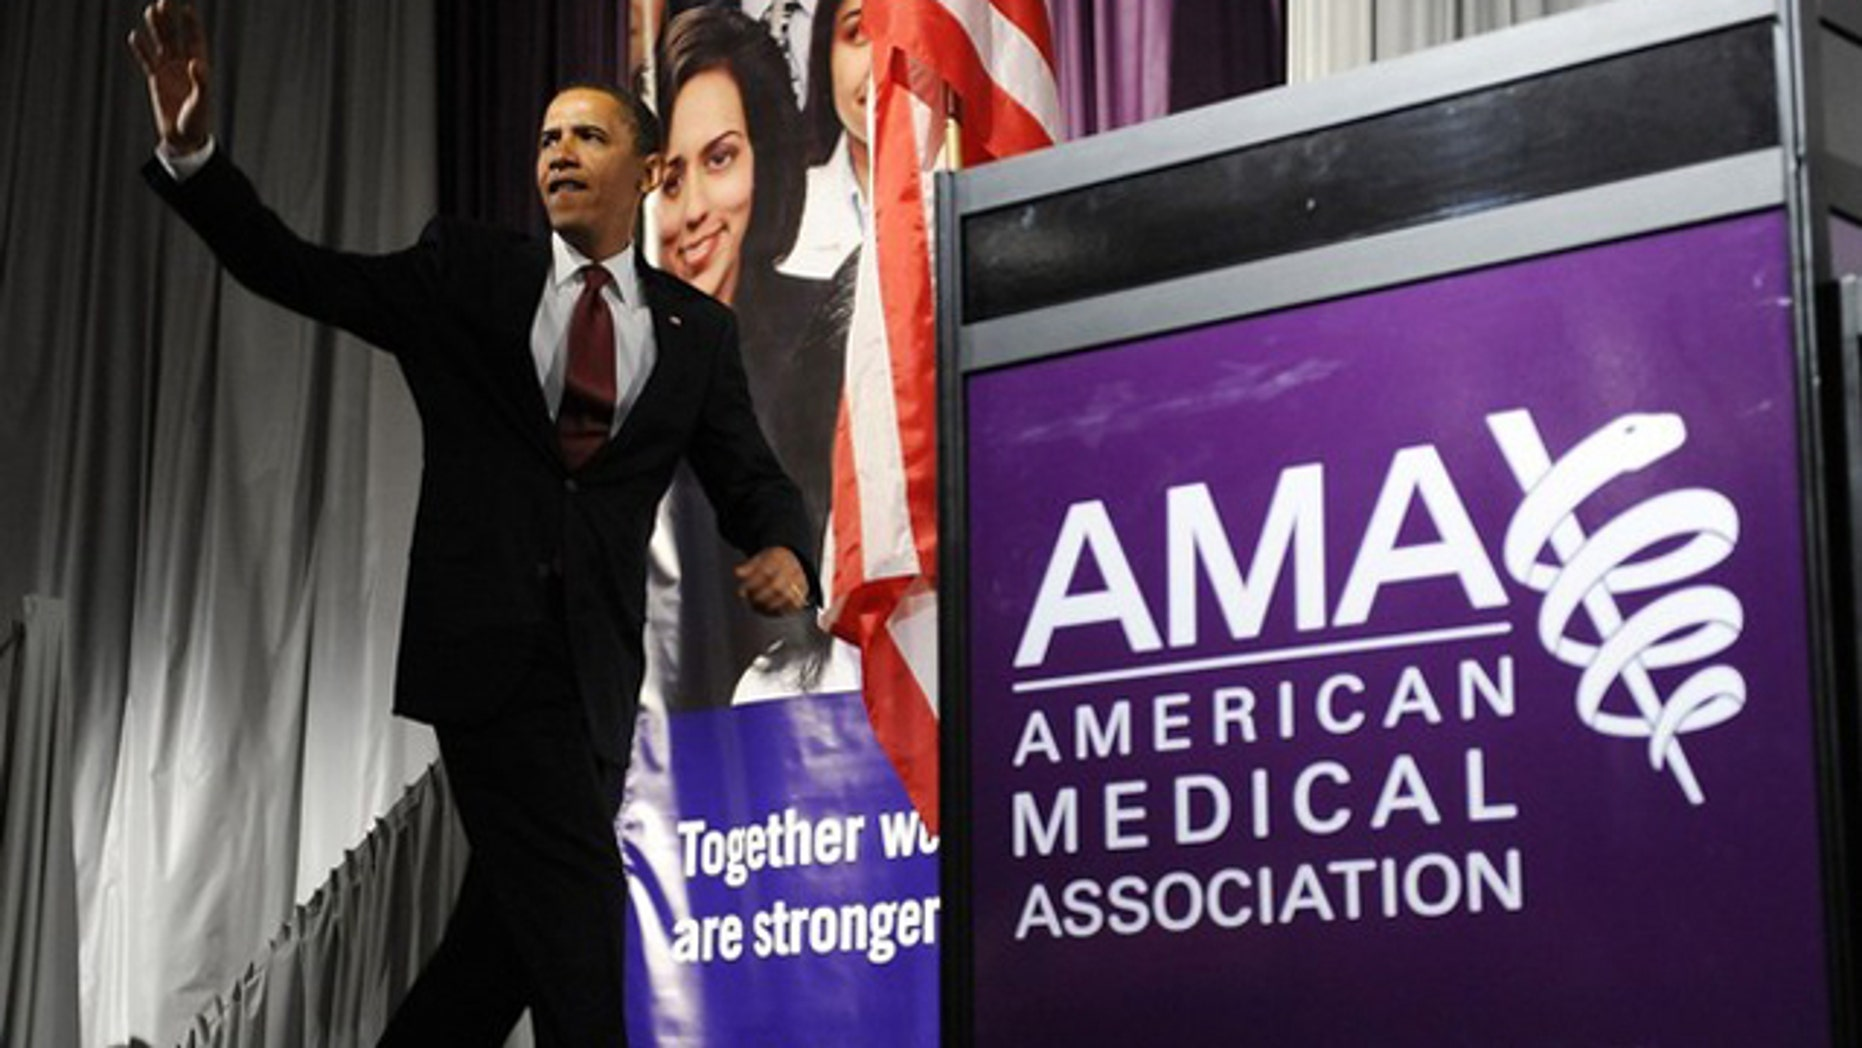 In this June 15, 2009, photo, President Obama arrives to deliver remarks on the health care system at the annual meeting of the American Medical Association in Chicago.